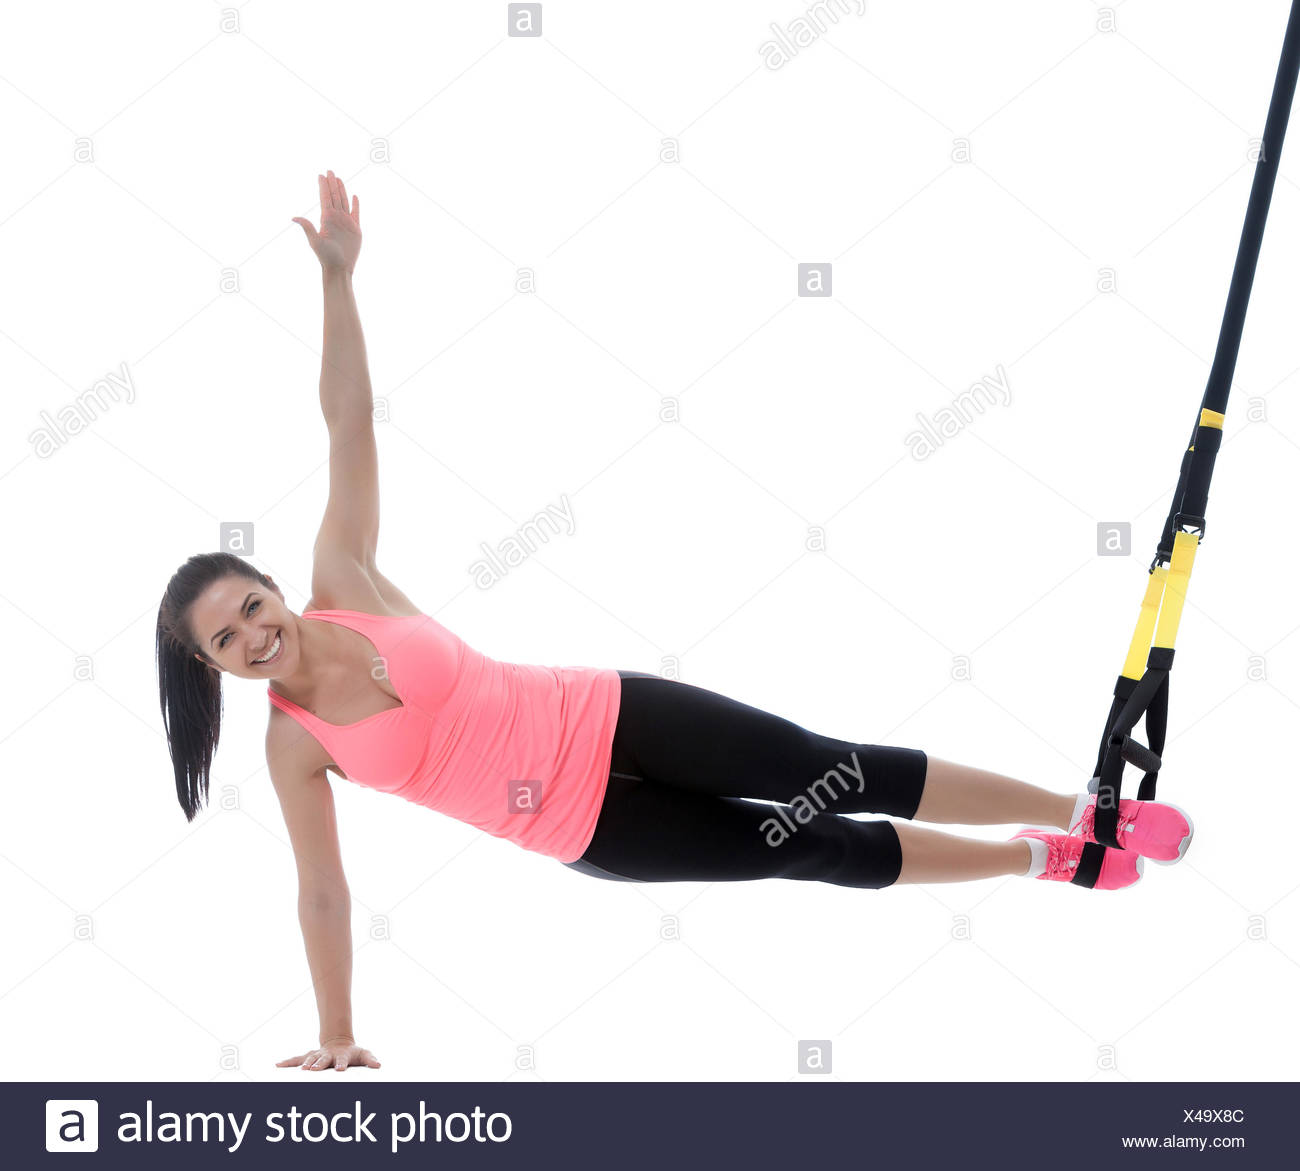 Des exercices de remise en forme Photo Stock